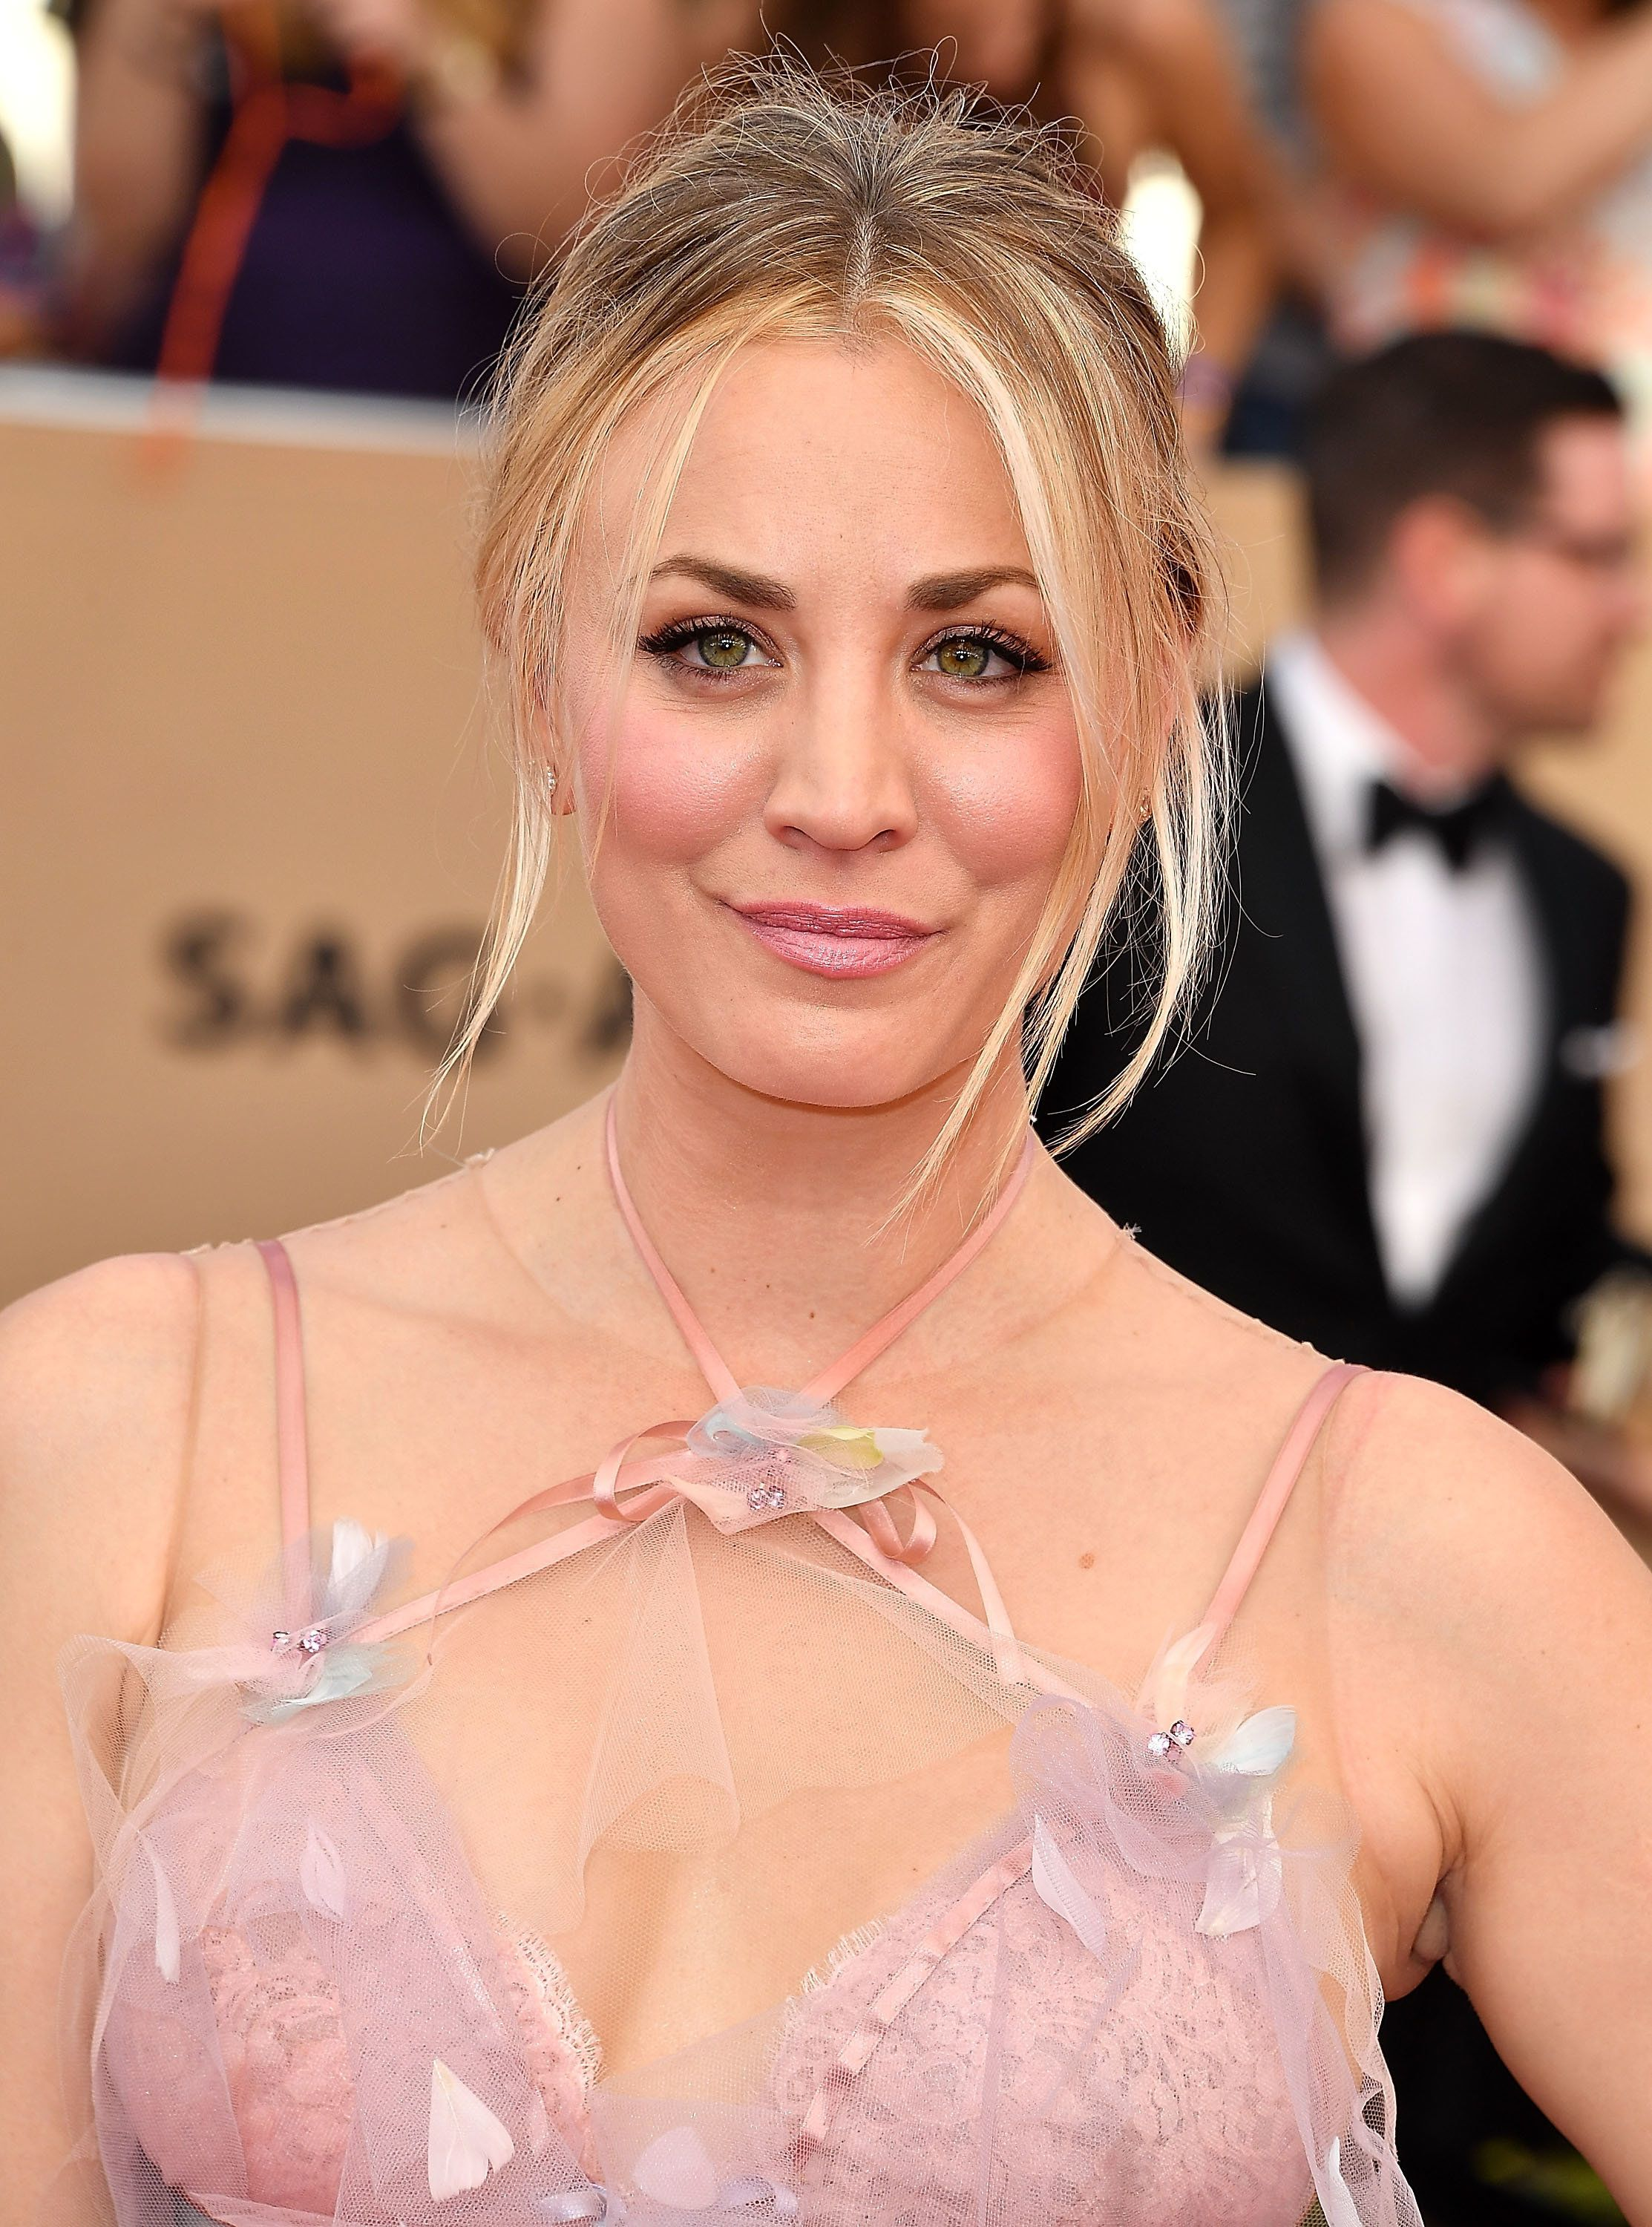 LOS ANGELES, CA - JANUARY 29:  Kaley Cuoco arrives at the 23rd Annual Screen Actors Guild Awards at The Shrine Expo Hall on January 29, 2017 in Los Angeles, California.  (Photo by Steve Granitz/WireImage)